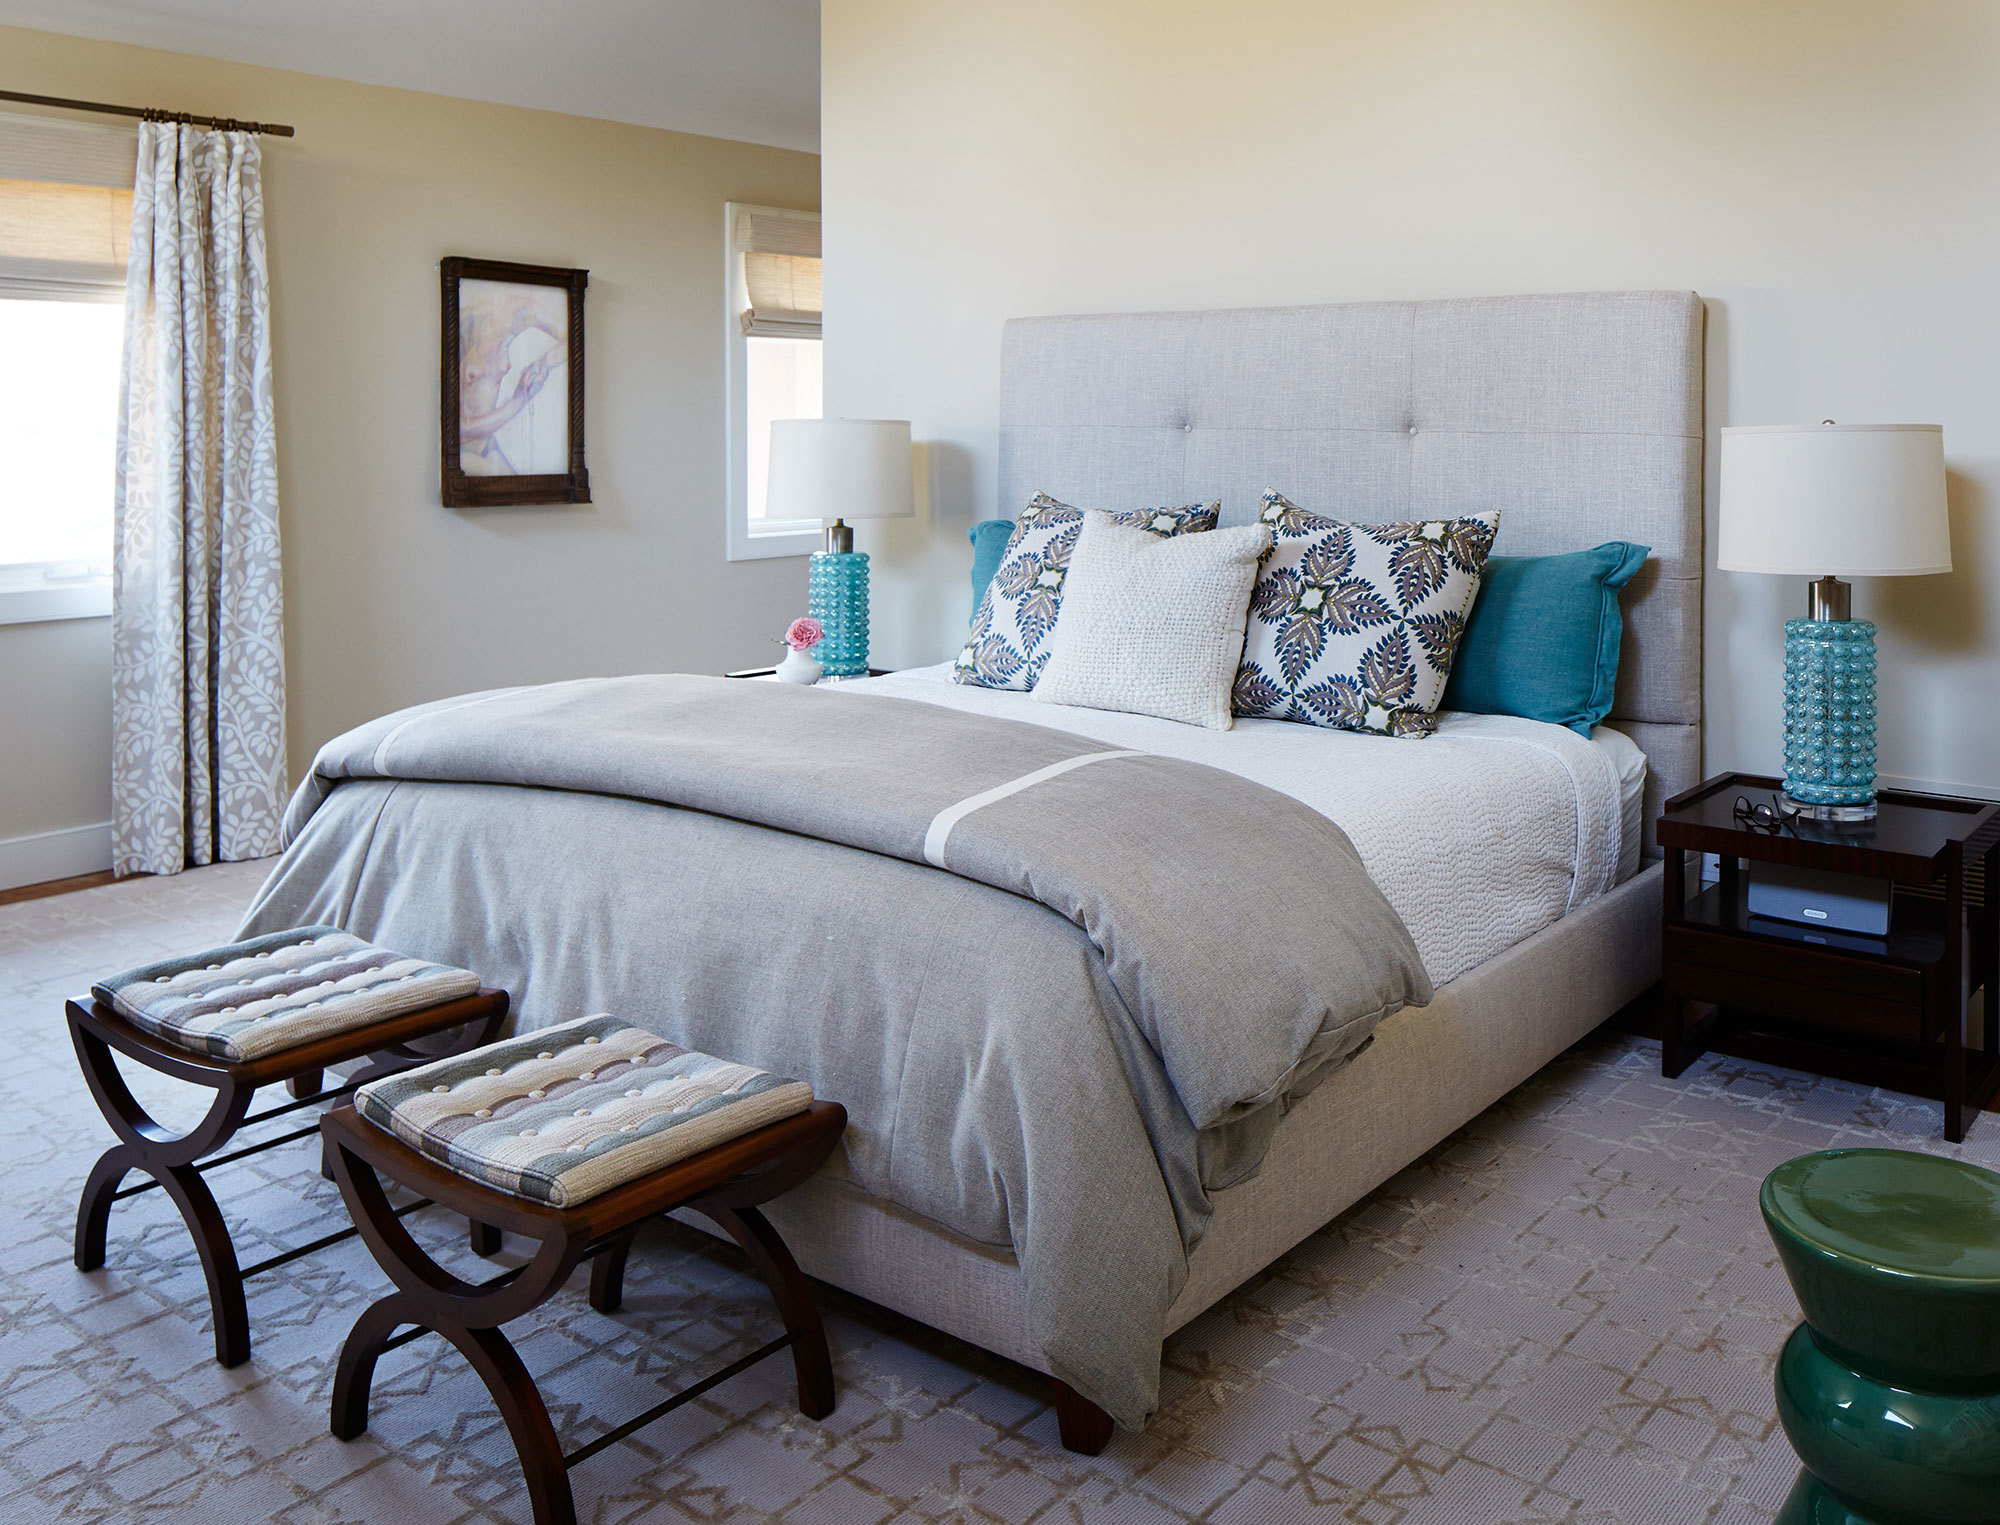 In the master bedroom, Dunbar stools outfitted with striped cushions, printed pillows by John Robshaw, and a pair of turquoise lamps combine for the home's beachiest moment.